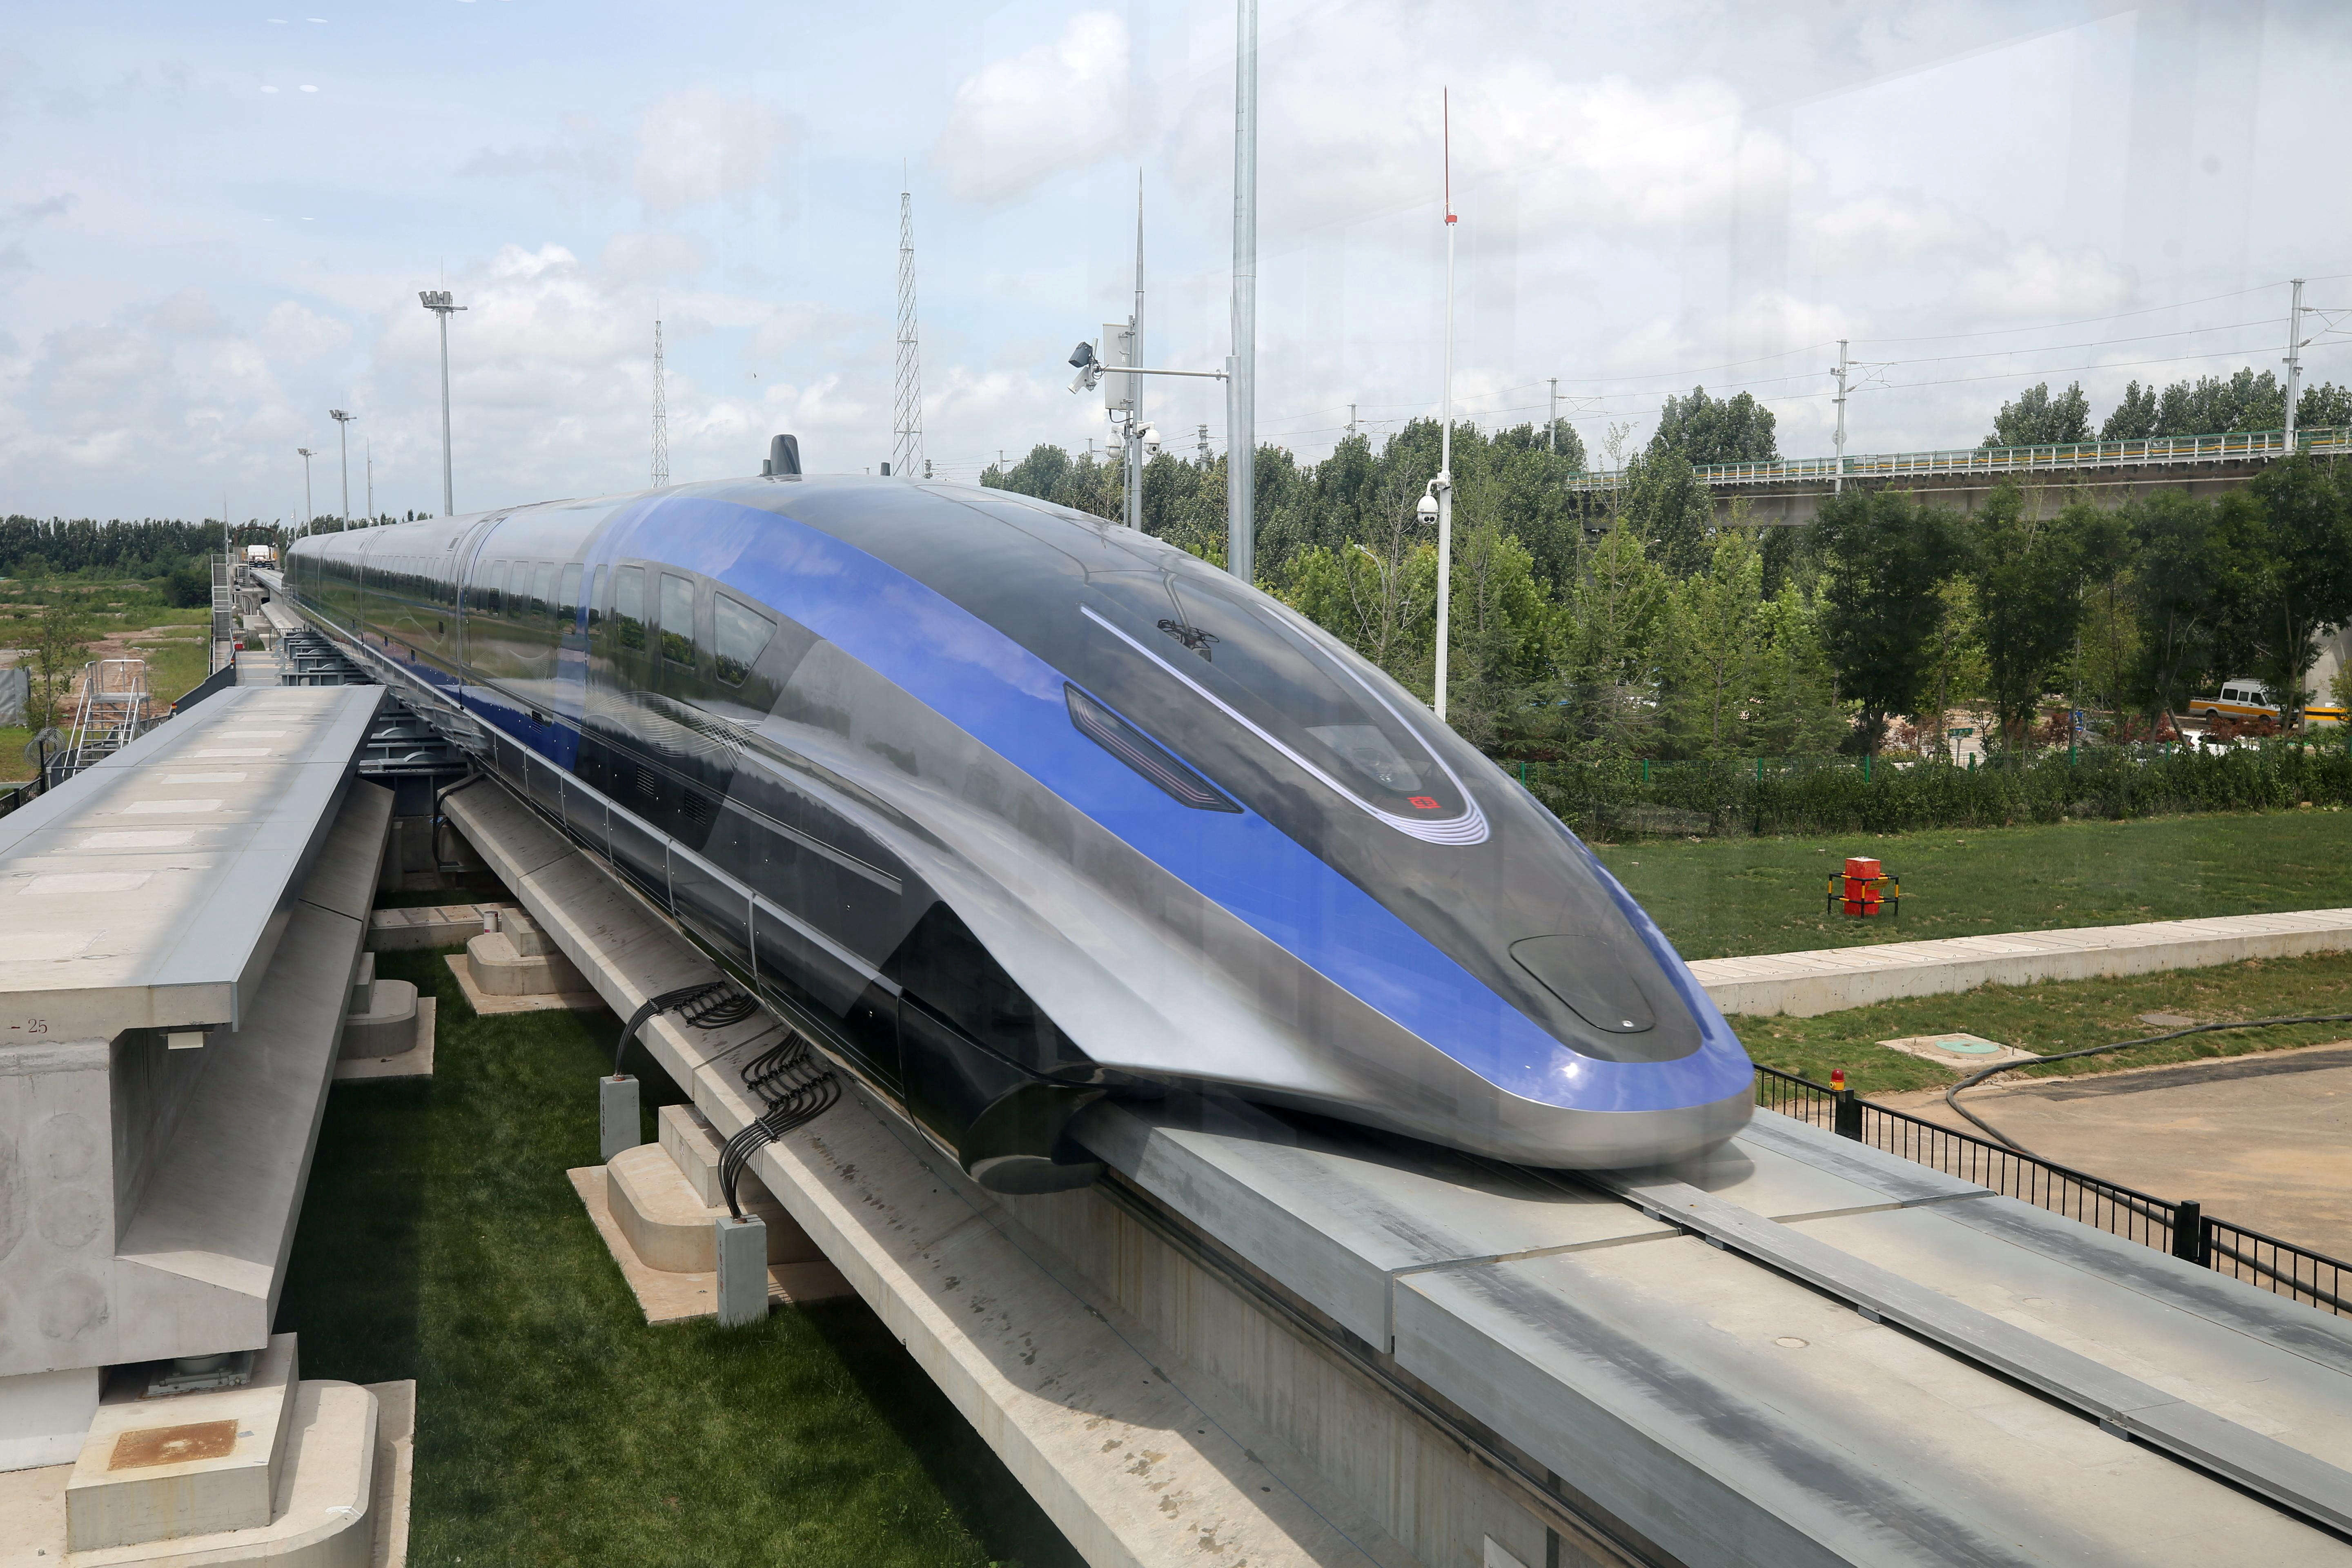 A high-speed maglev train, capable of a top speed of 600 kph, is pictured in Qingdao, Shandong province, China